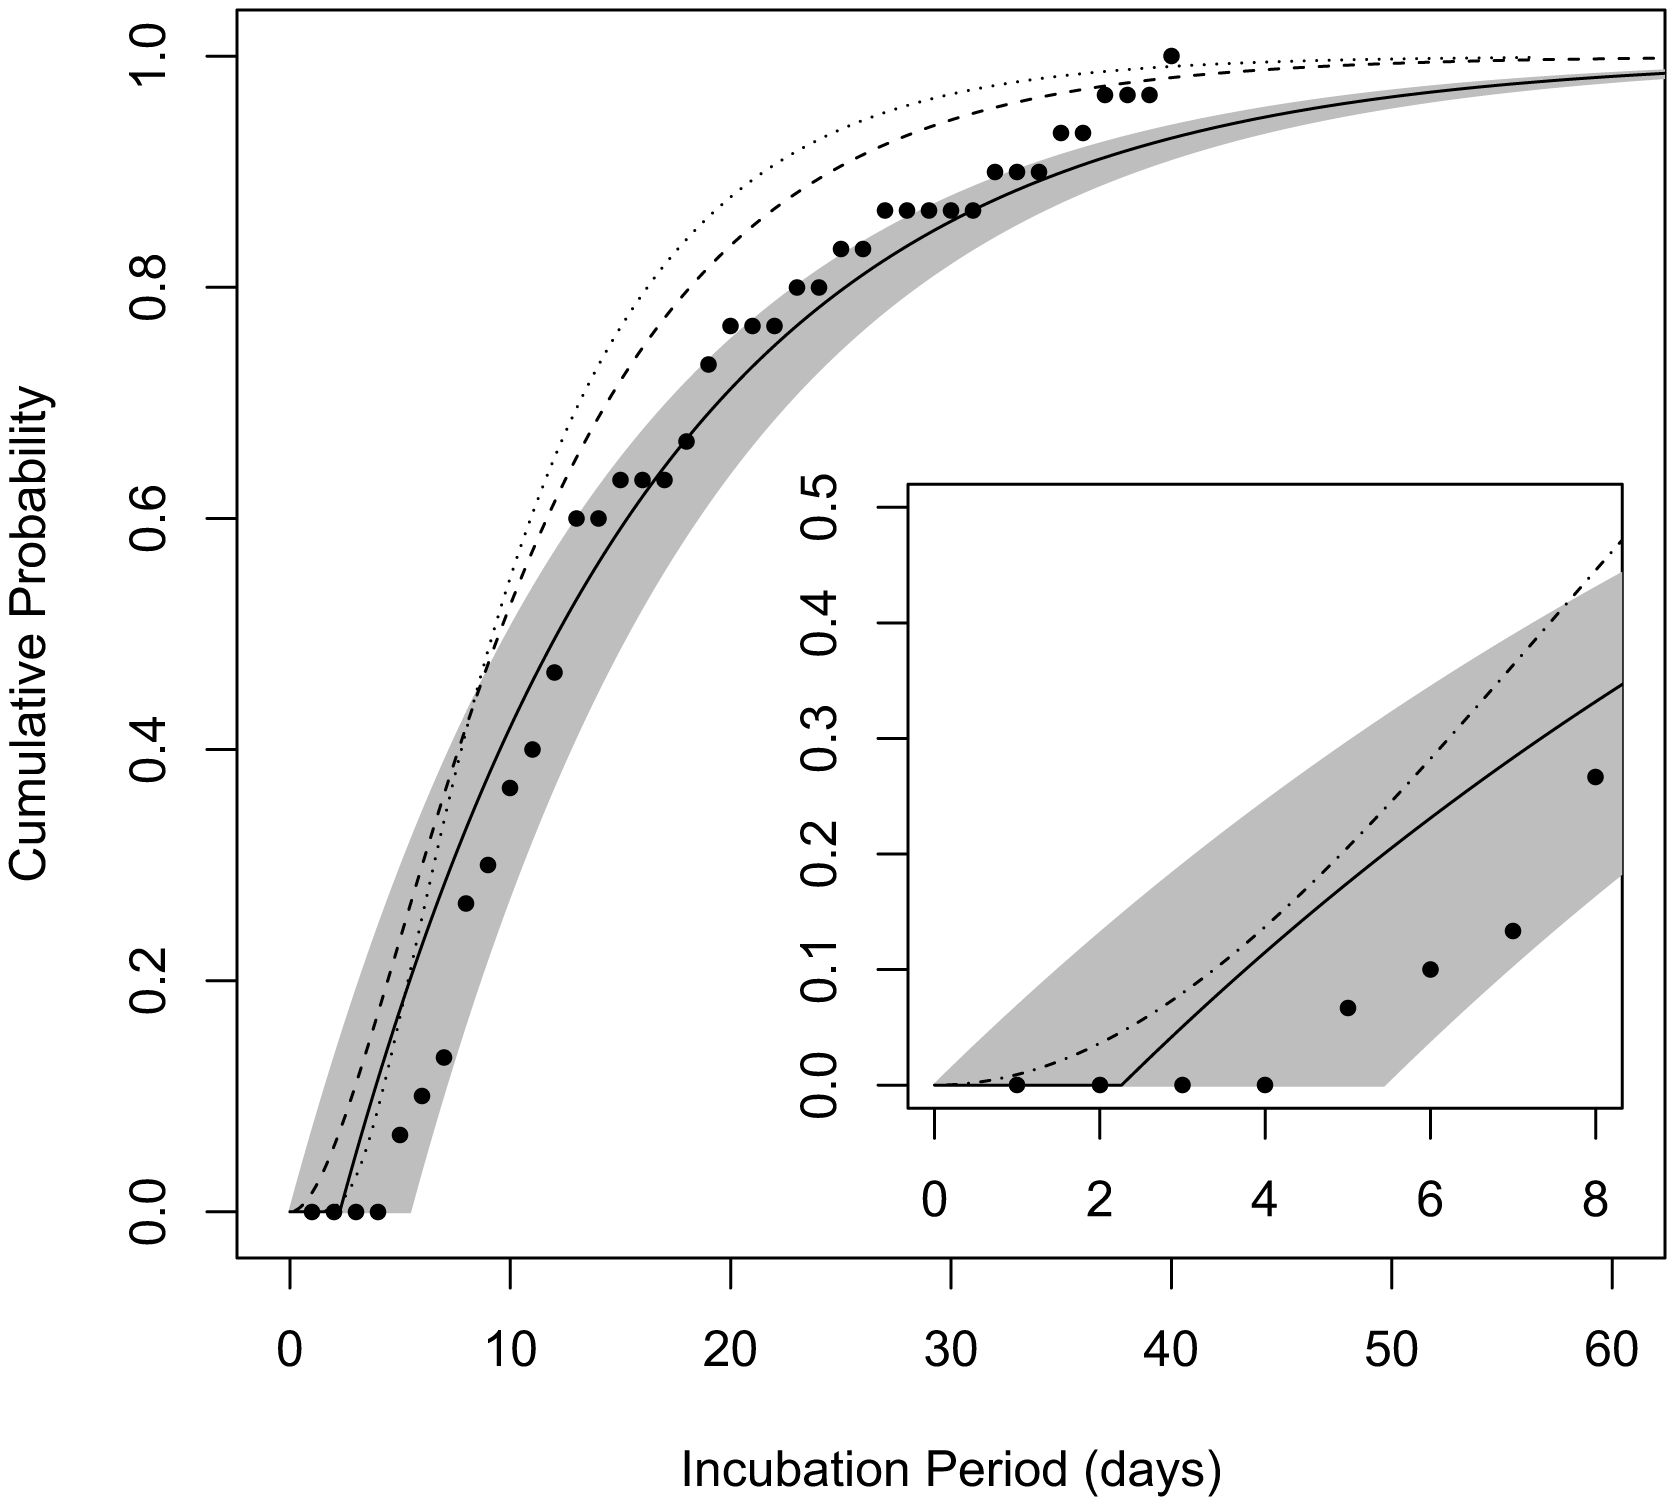 Cumulative distribution functions for the incubation period among those infected by a low dose.